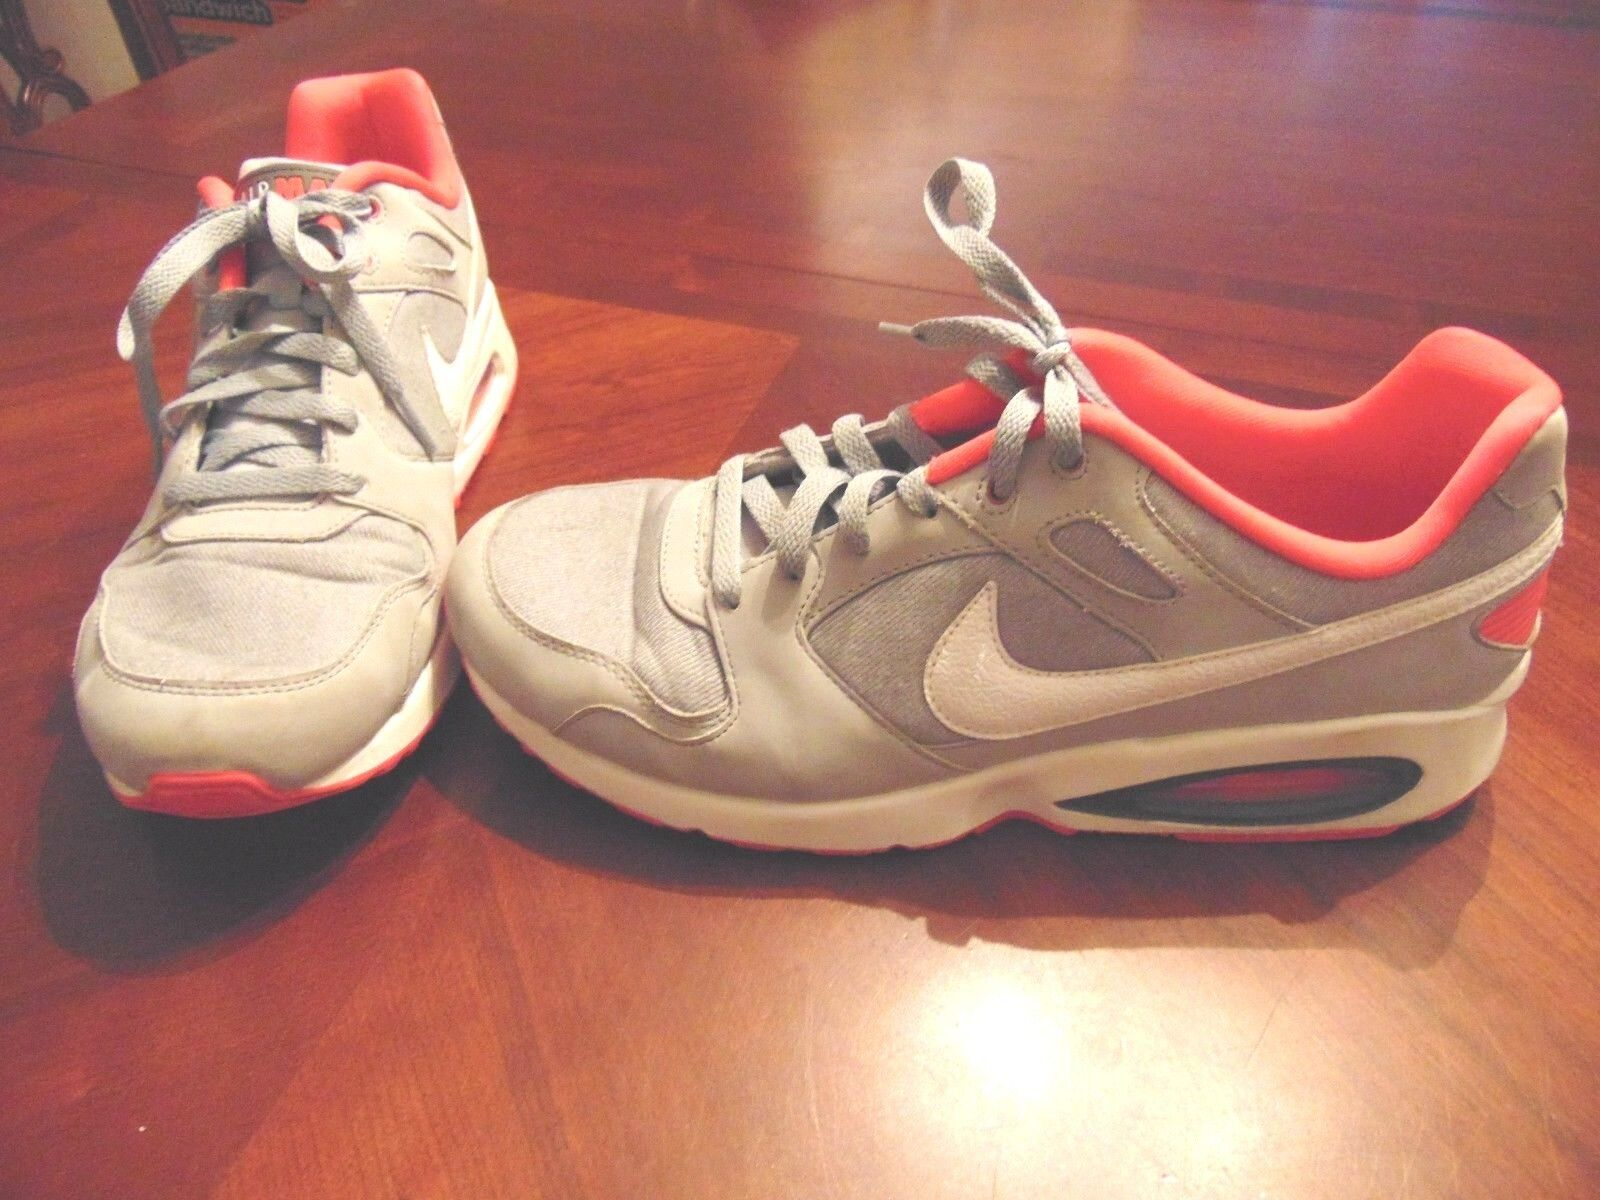 c073f5038fa0 555423-016 NIKE NIKE NIKE AIR MAX RUNNING SHOES GRAY SHOES SIZE 12 0529ec